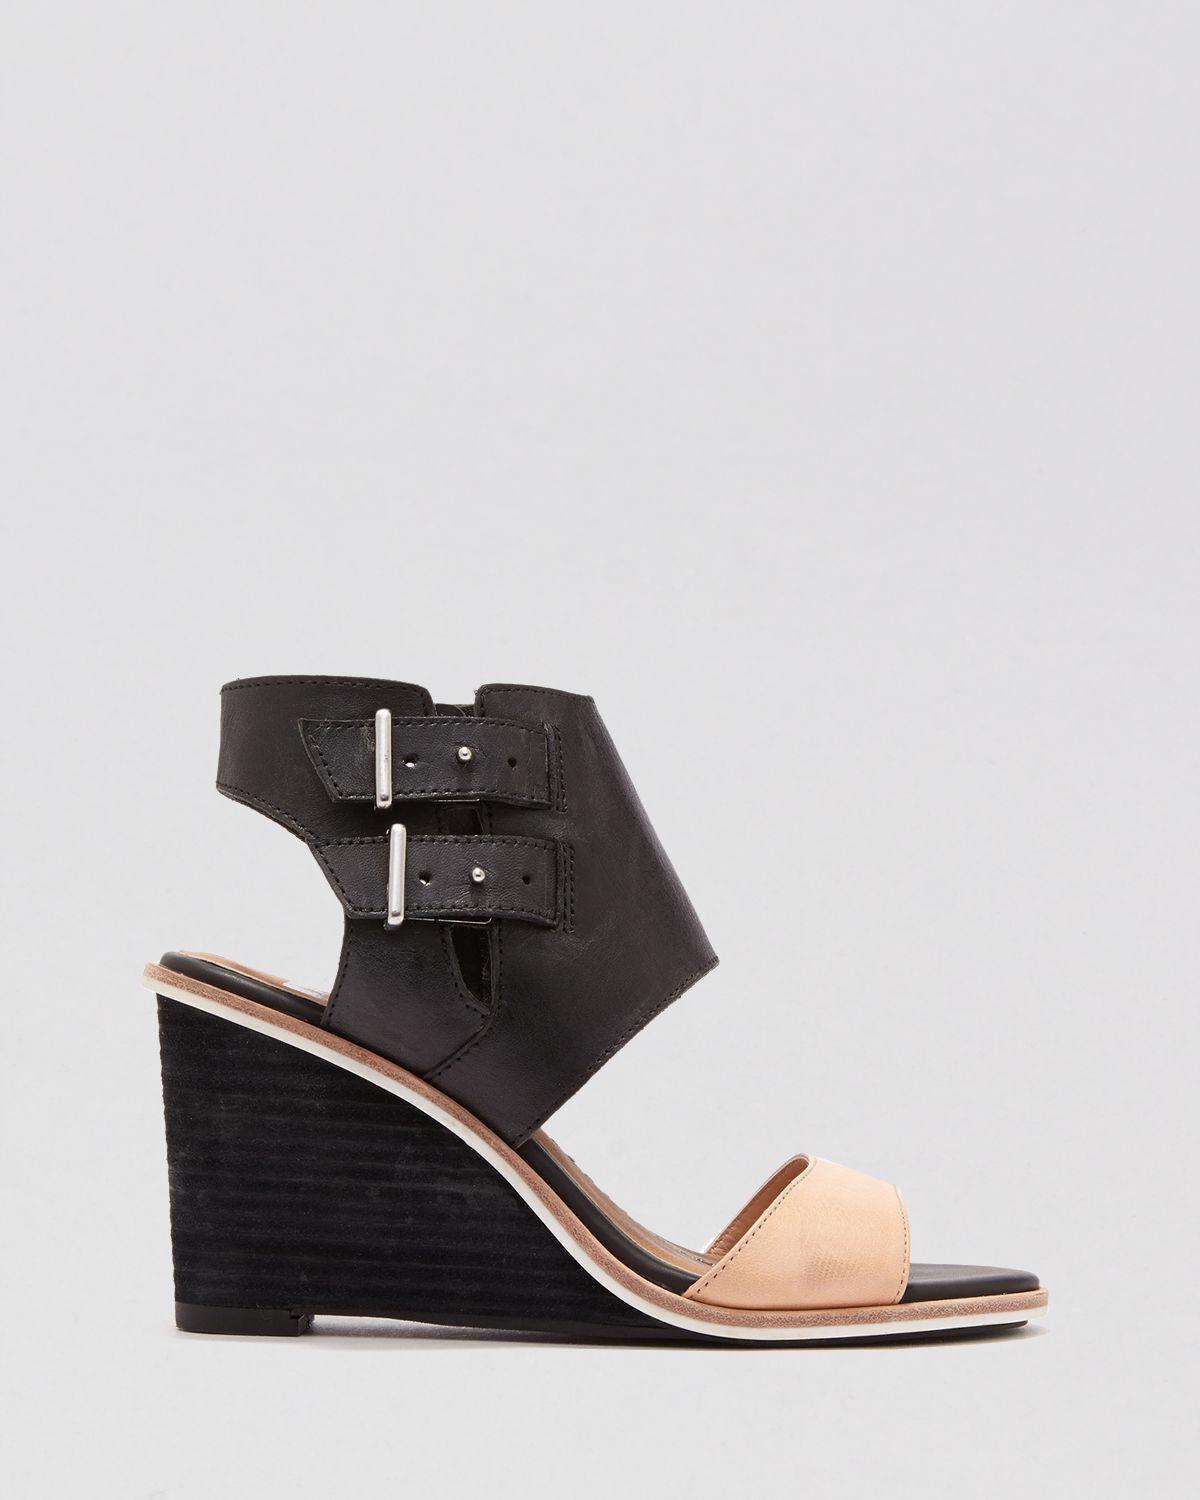 dolce vita open toe wedge sandals cambria in black lyst